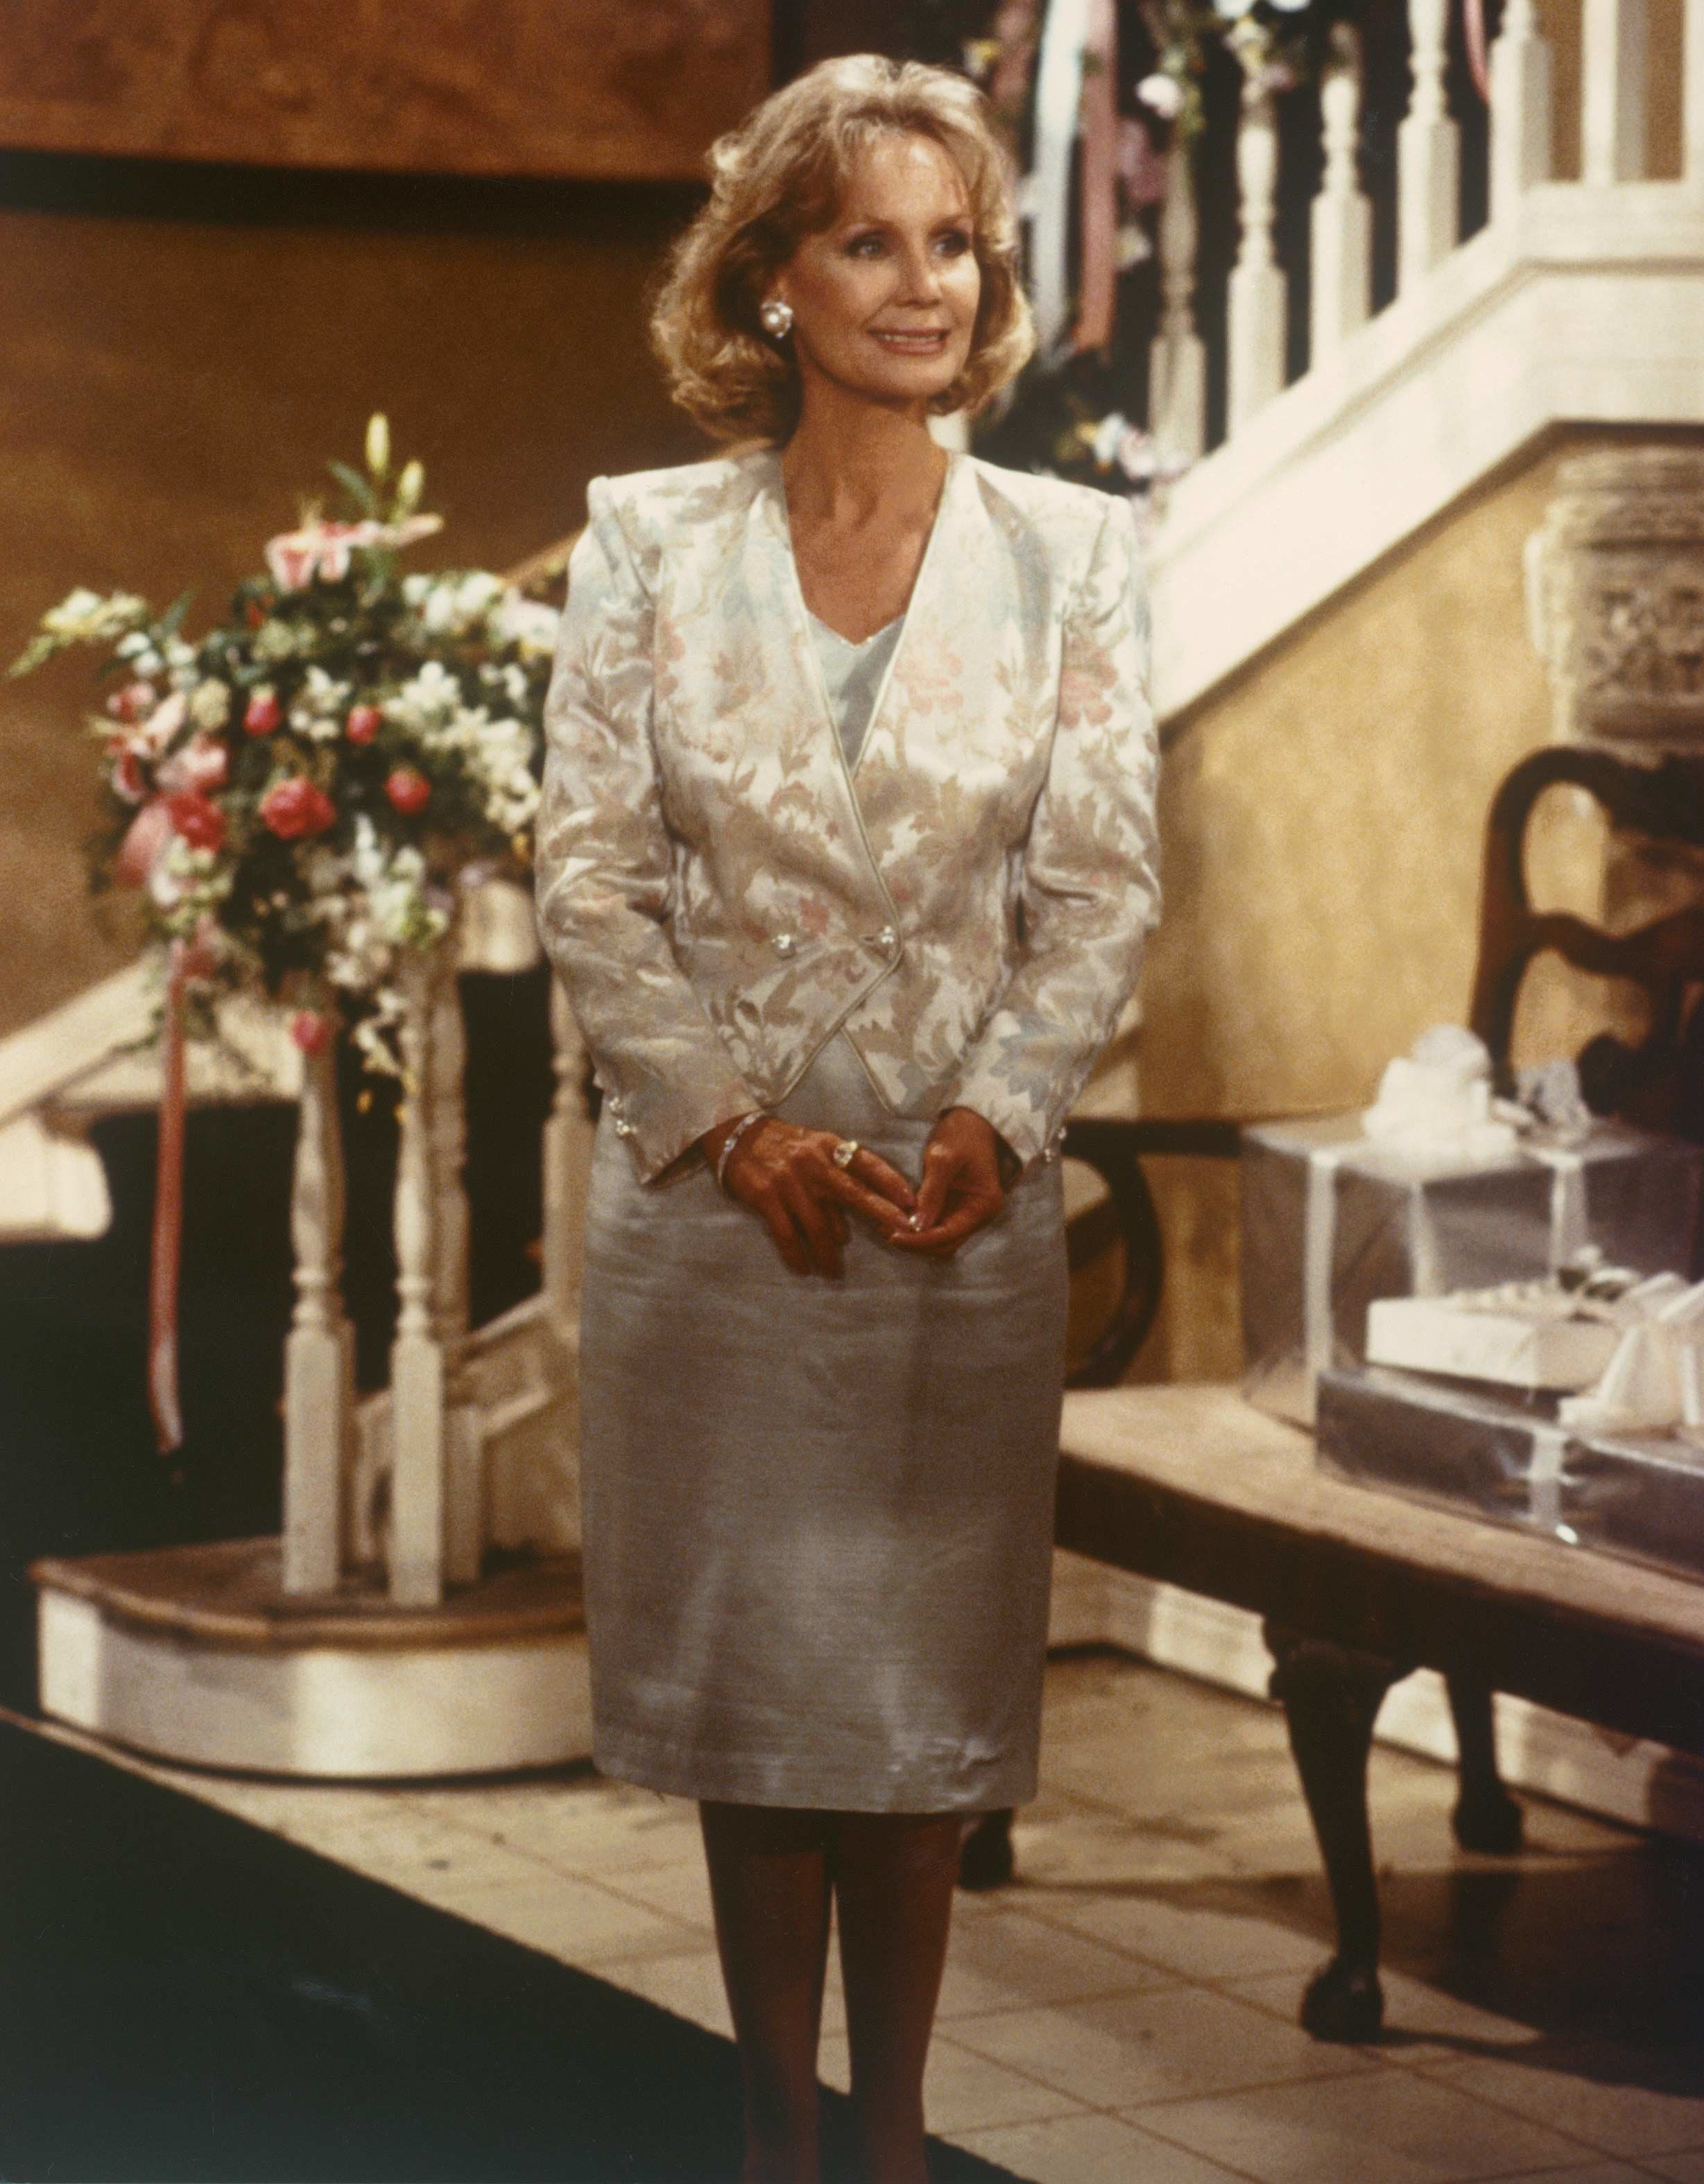 Marla Adamas as Dina Abbott